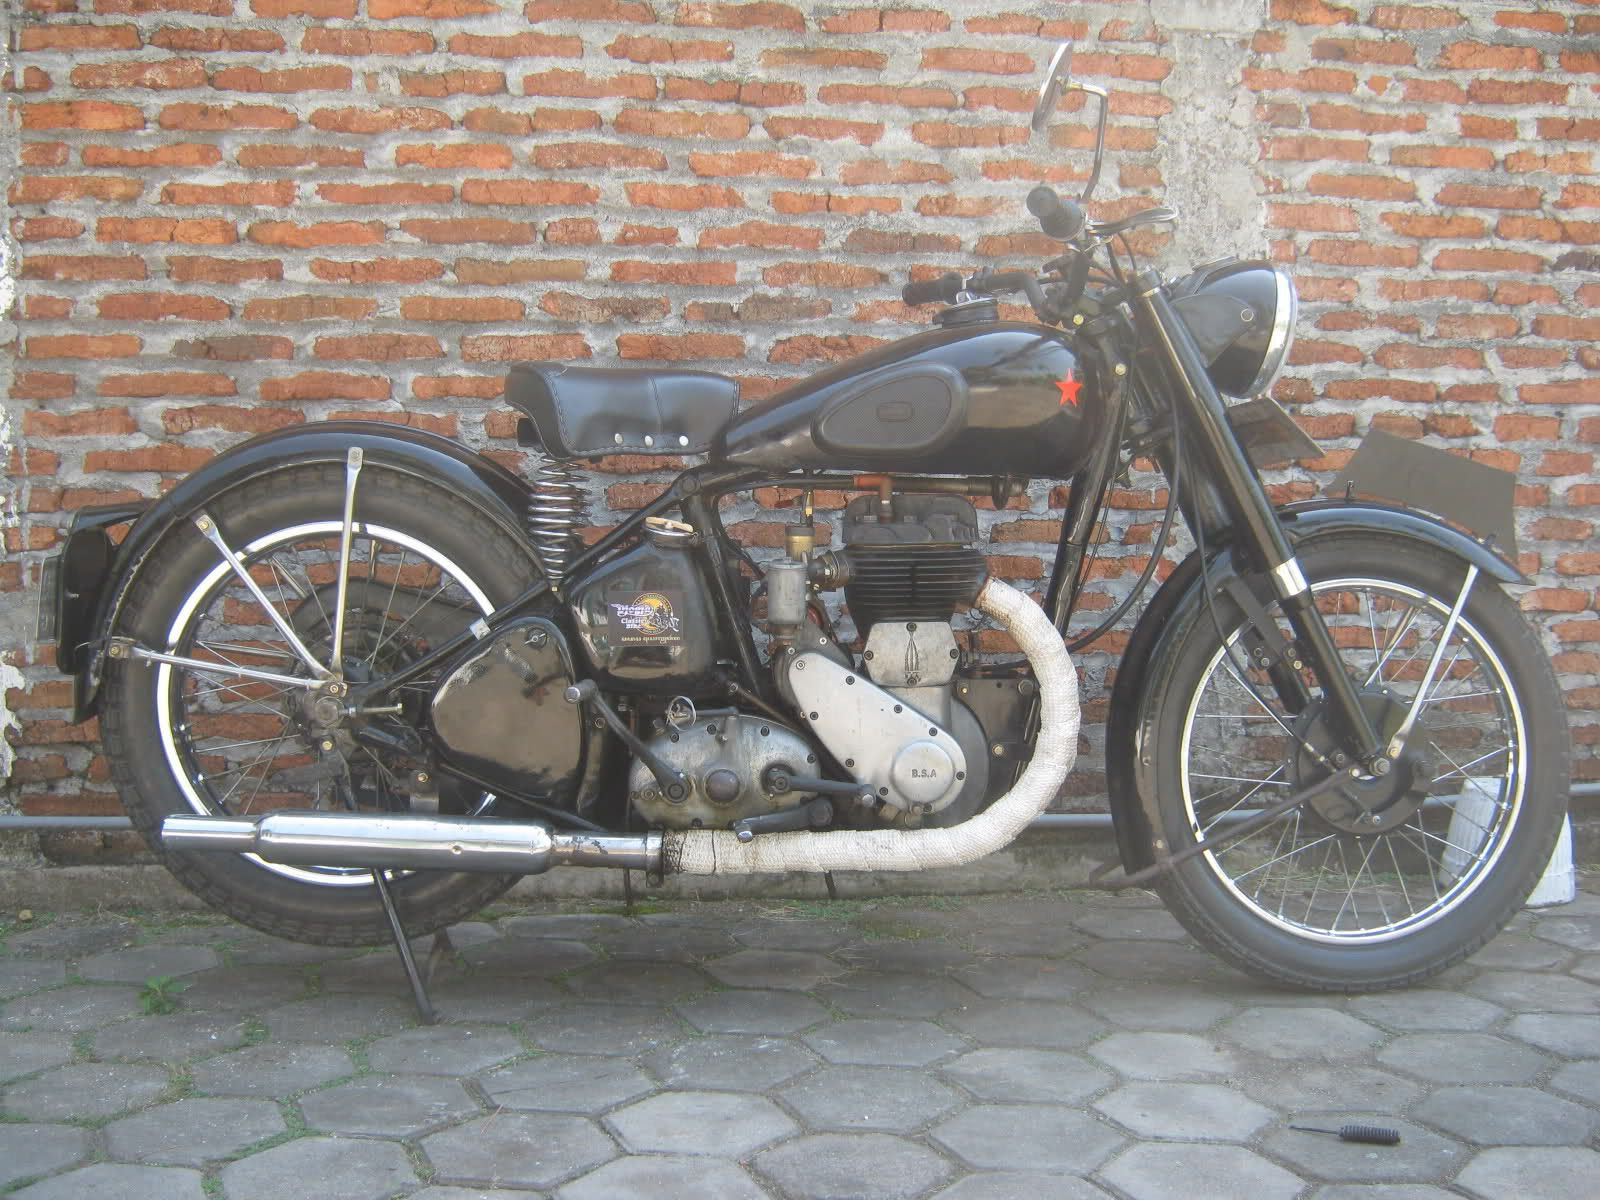 Bsa M20 1948 Rebuild Bsa M20 500cc I Put Disc Brake For The Back Safety First Although The Bsa M20 Was I Classic Bikes Bsa Motorcycle Vintage Motorcycles